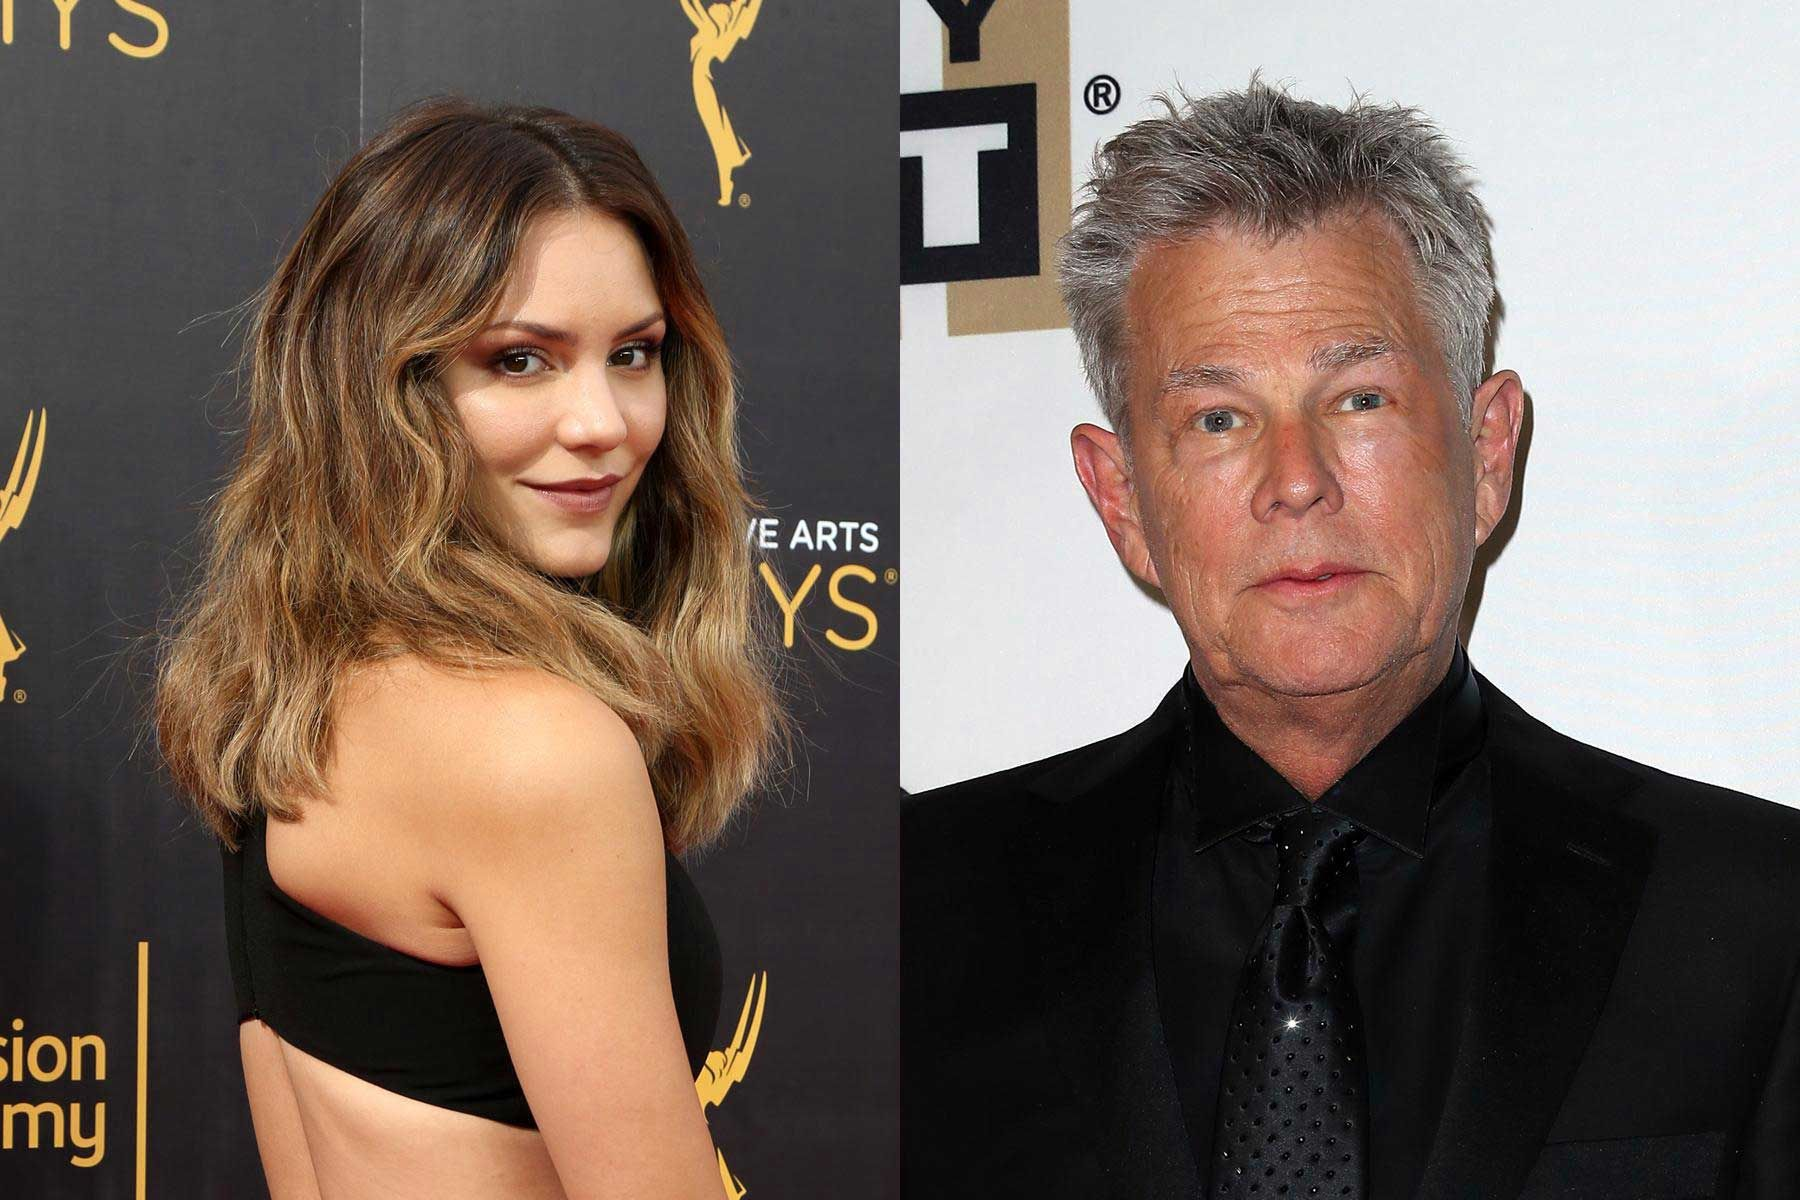 The 68 Year Old Singer David Foster Was Caught Kissing His 35 Year Old Lover Old Singers The Fosters Singer